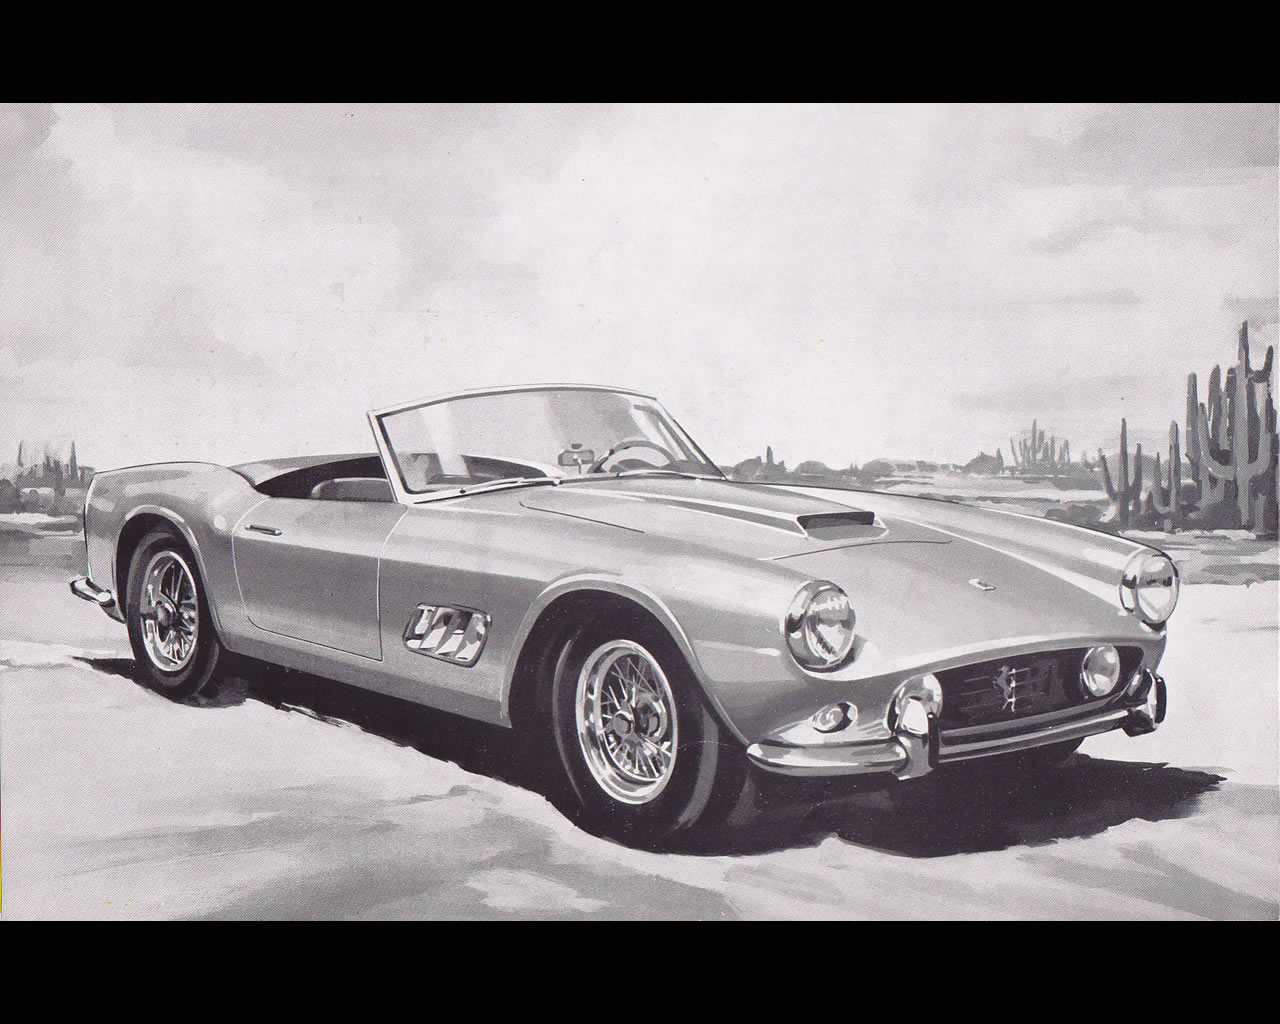 Drawn ferarri wallpaper 250 GT Spyder factory GT